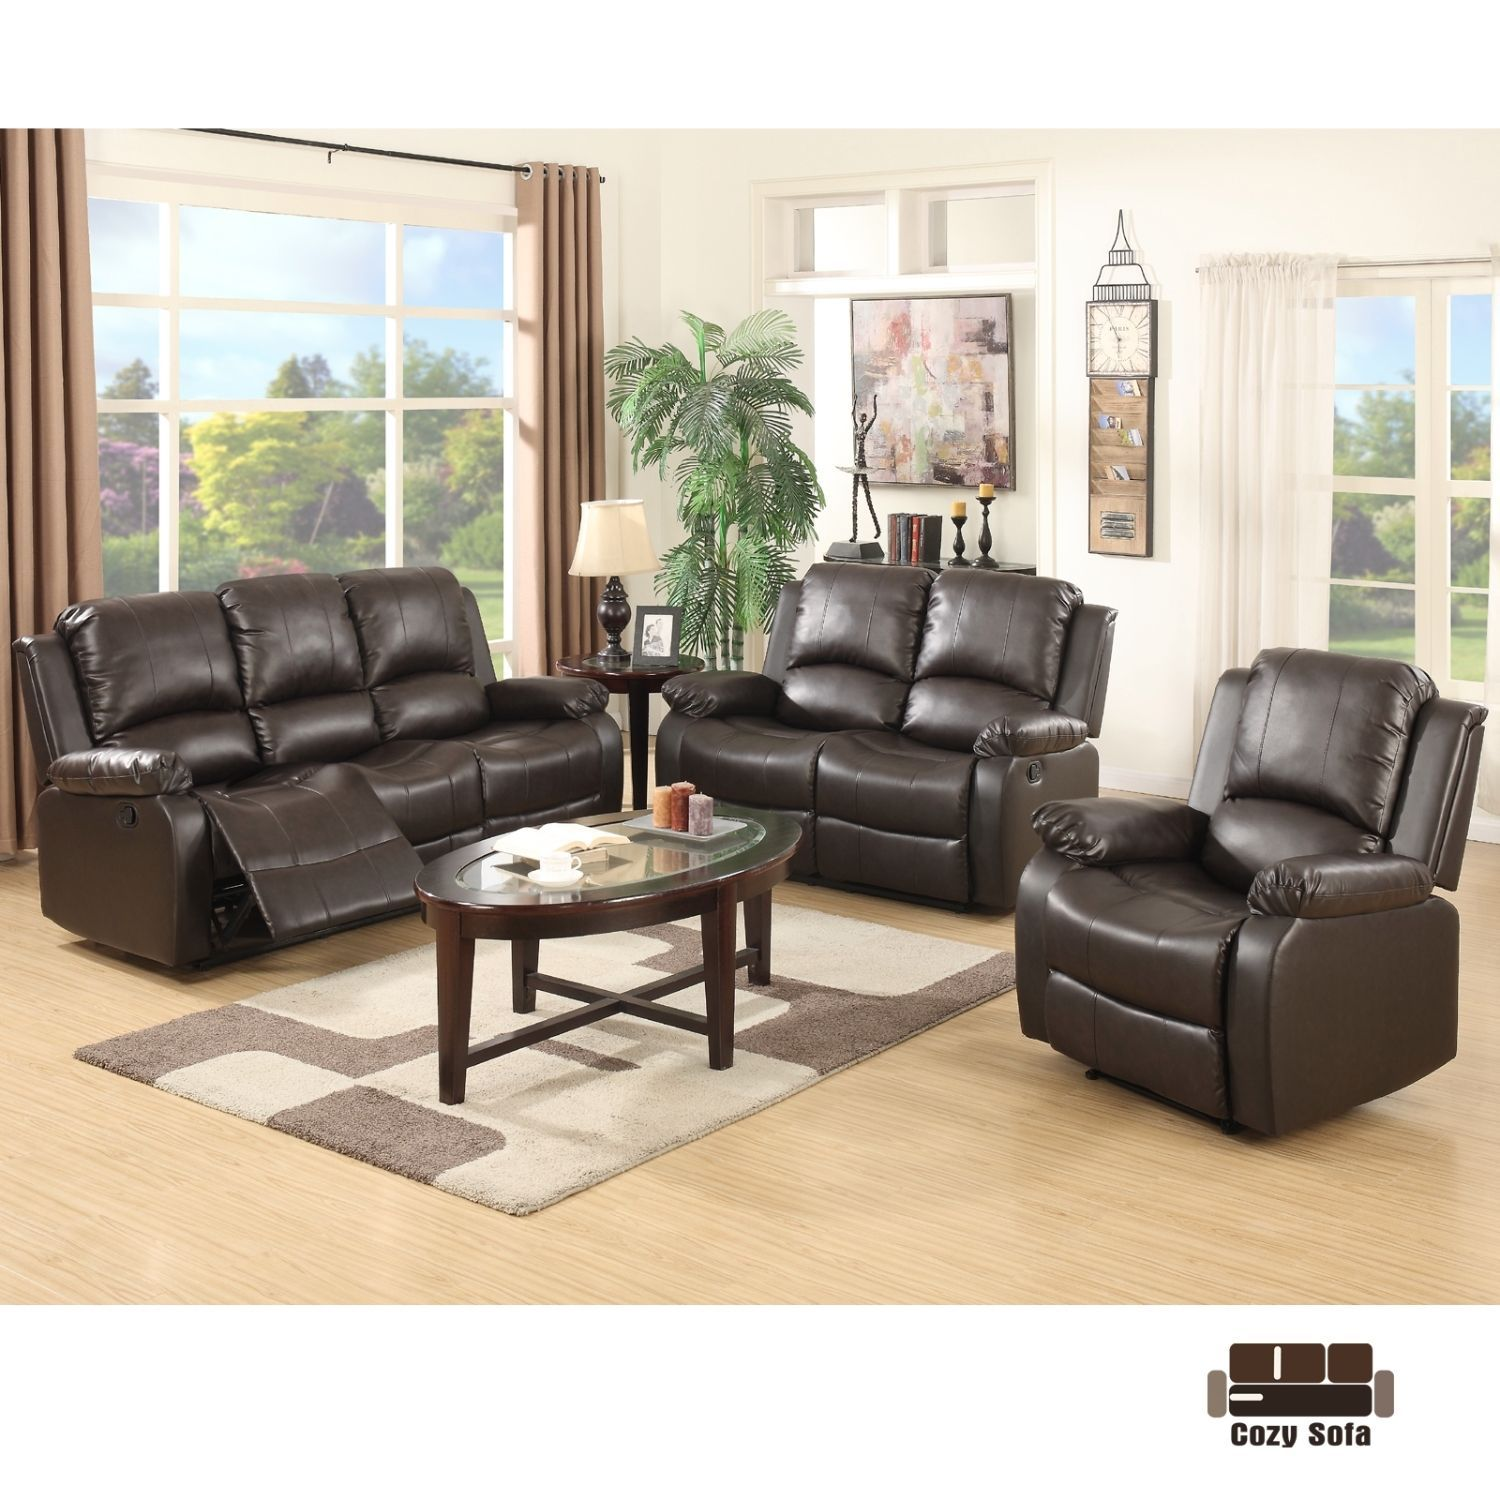 set sofa loveseat chaise couch recliner leather living room